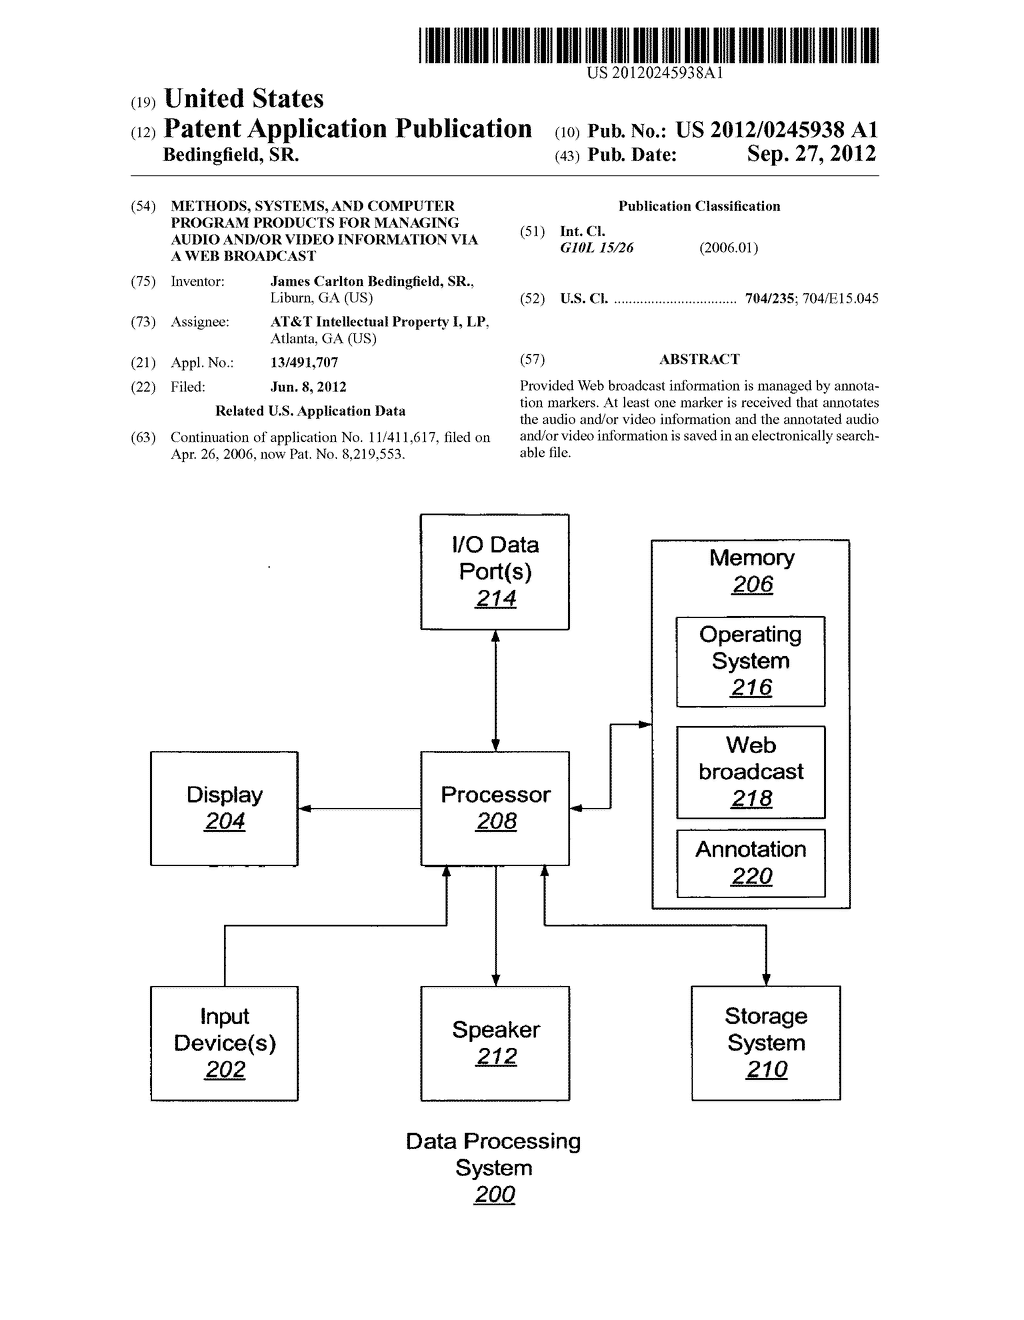 METHODS, SYSTEMS, AND COMPUTER PROGRAM PRODUCTS FOR MANAGING AUDIO AND/OR     VIDEO INFORMATION VIA A WEB BROADCAST - diagram, schematic, and image 01